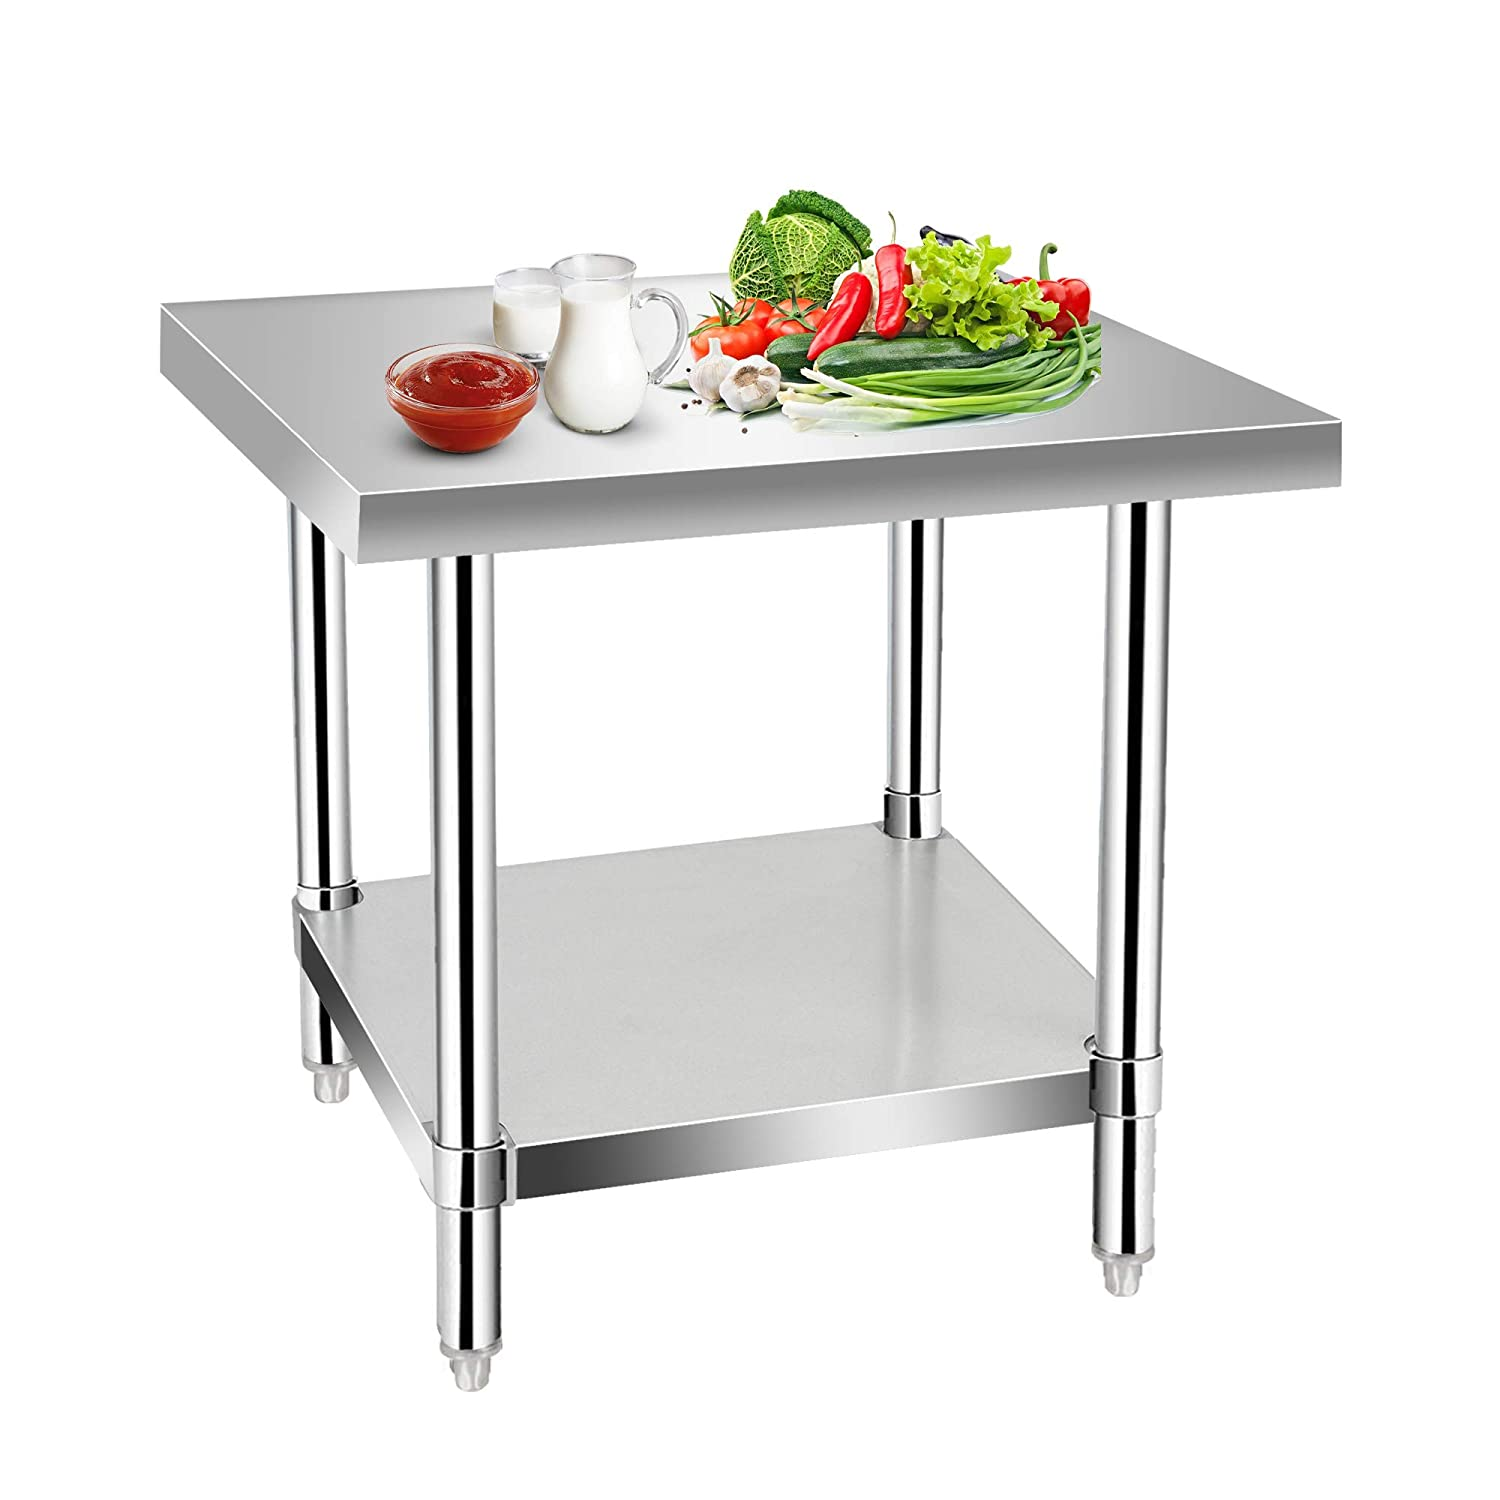 Commercial Kitchen Prep & Work Table, KITMA Stainless Steel Food Prep Tables, 30 x 30 Inches,NSF